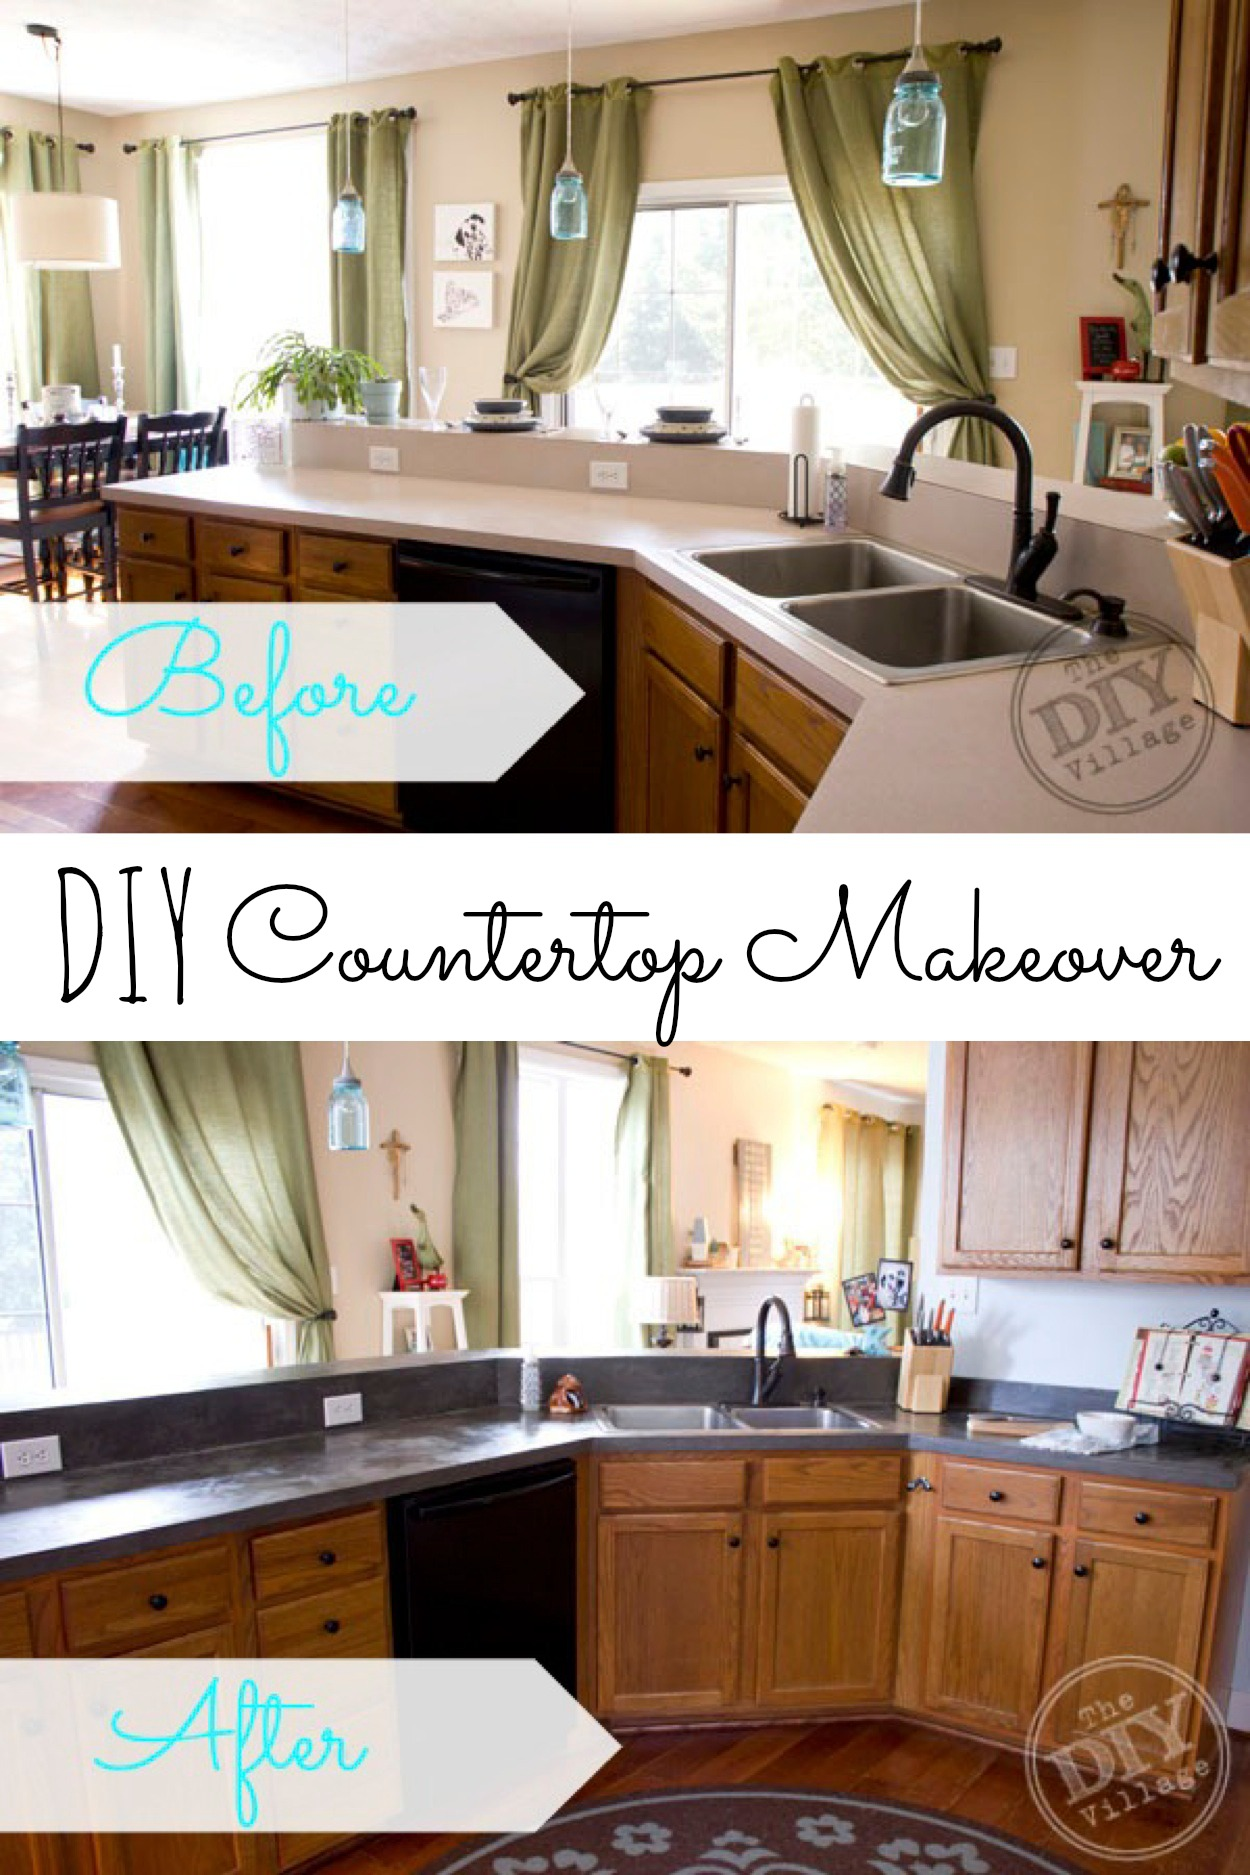 9 diy countertop makeovers affordable kitchen countertops DIY Concrete Countertop Yes please Great DIY countertop makeovers that are doable and affordable